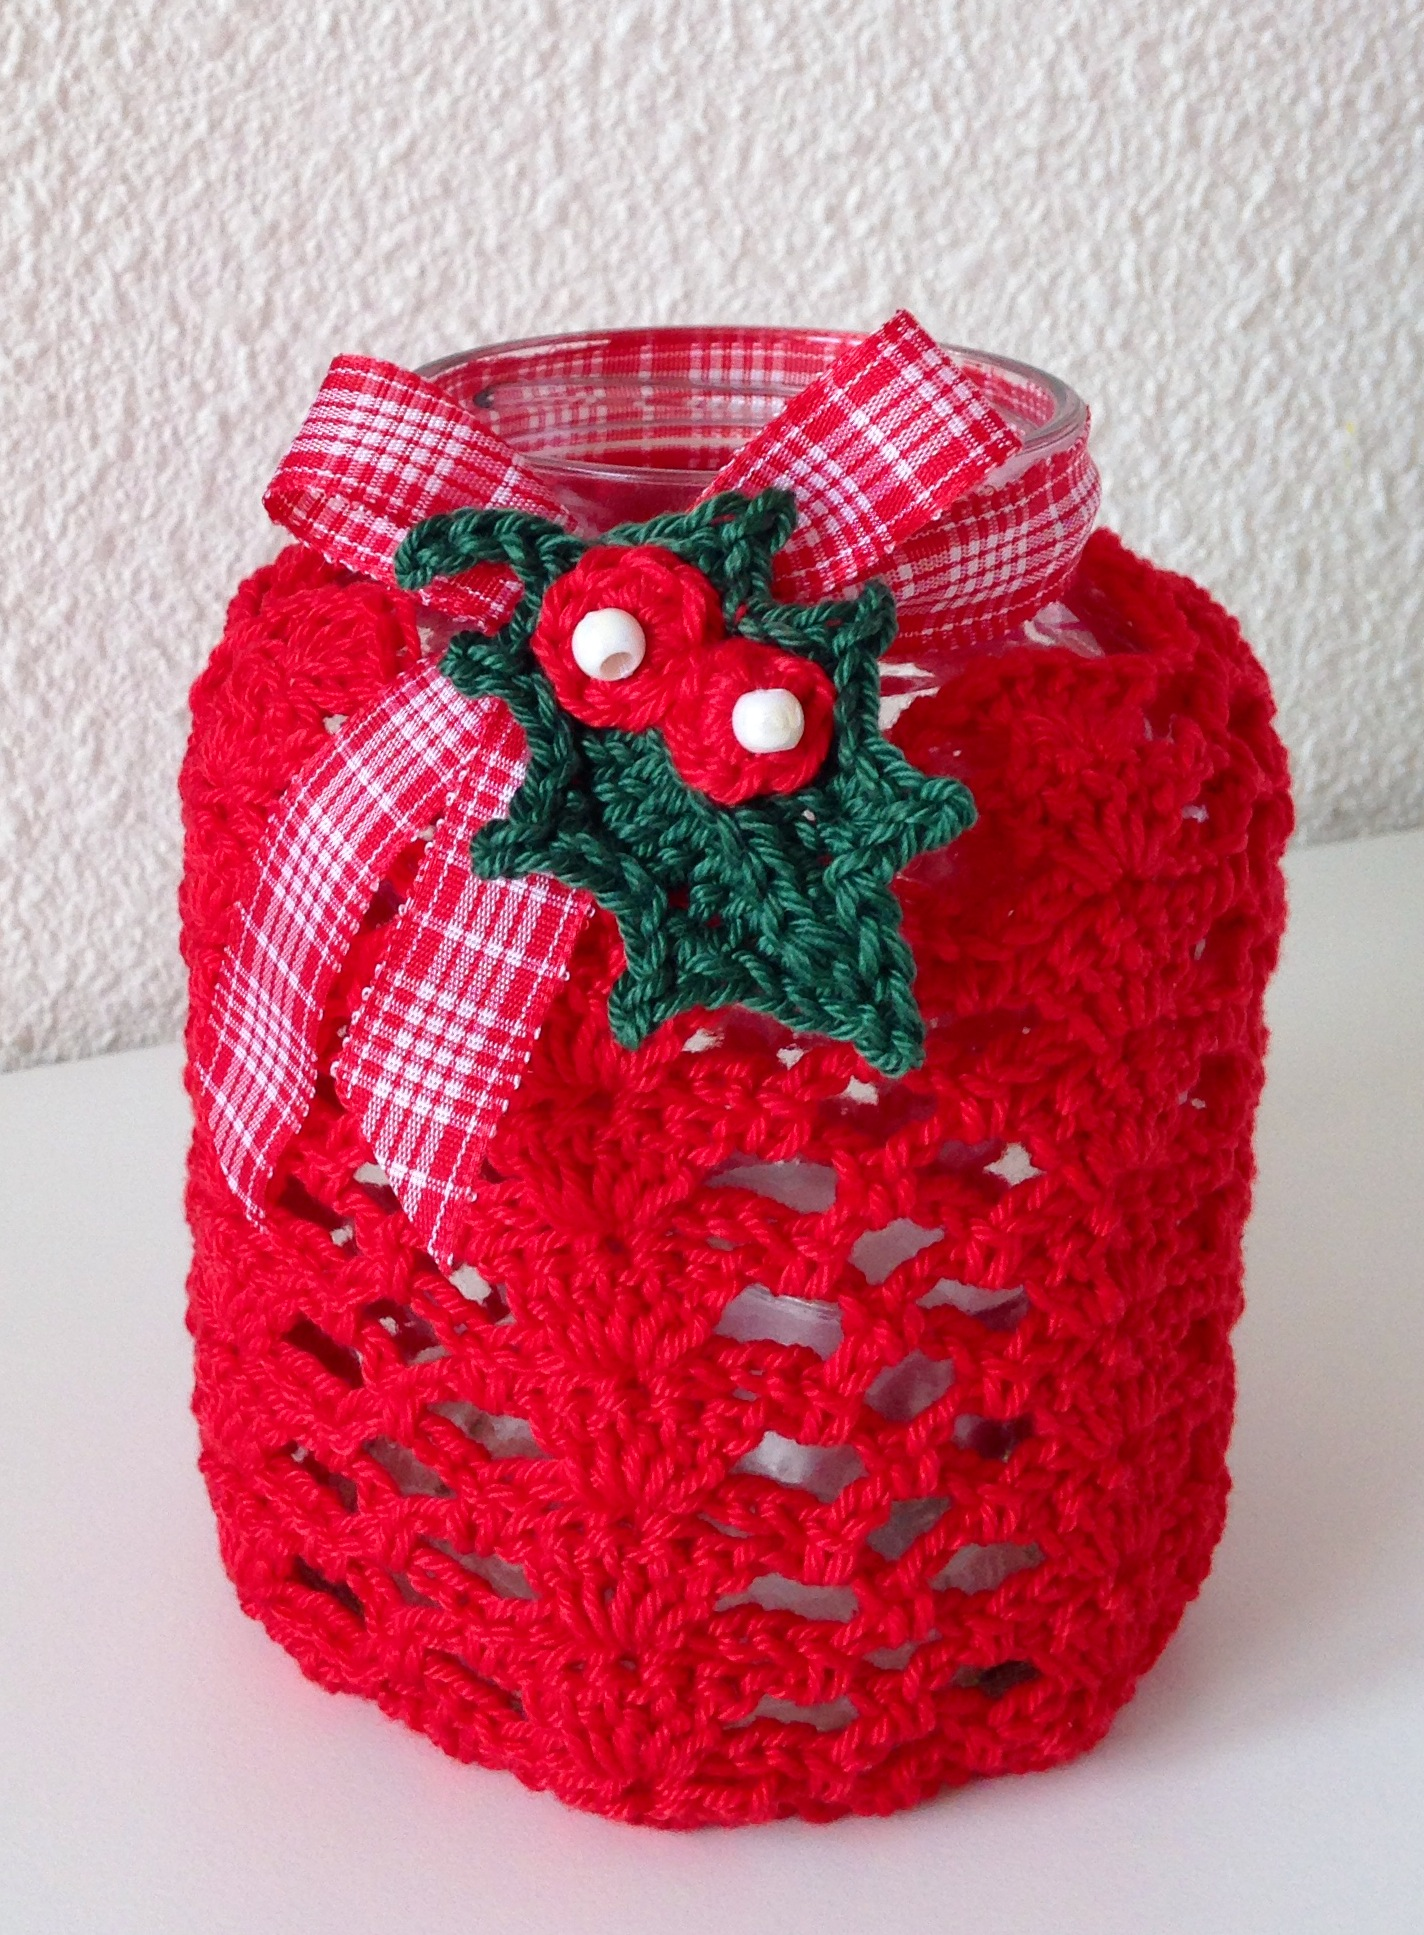 X-massy crocheted jar cover